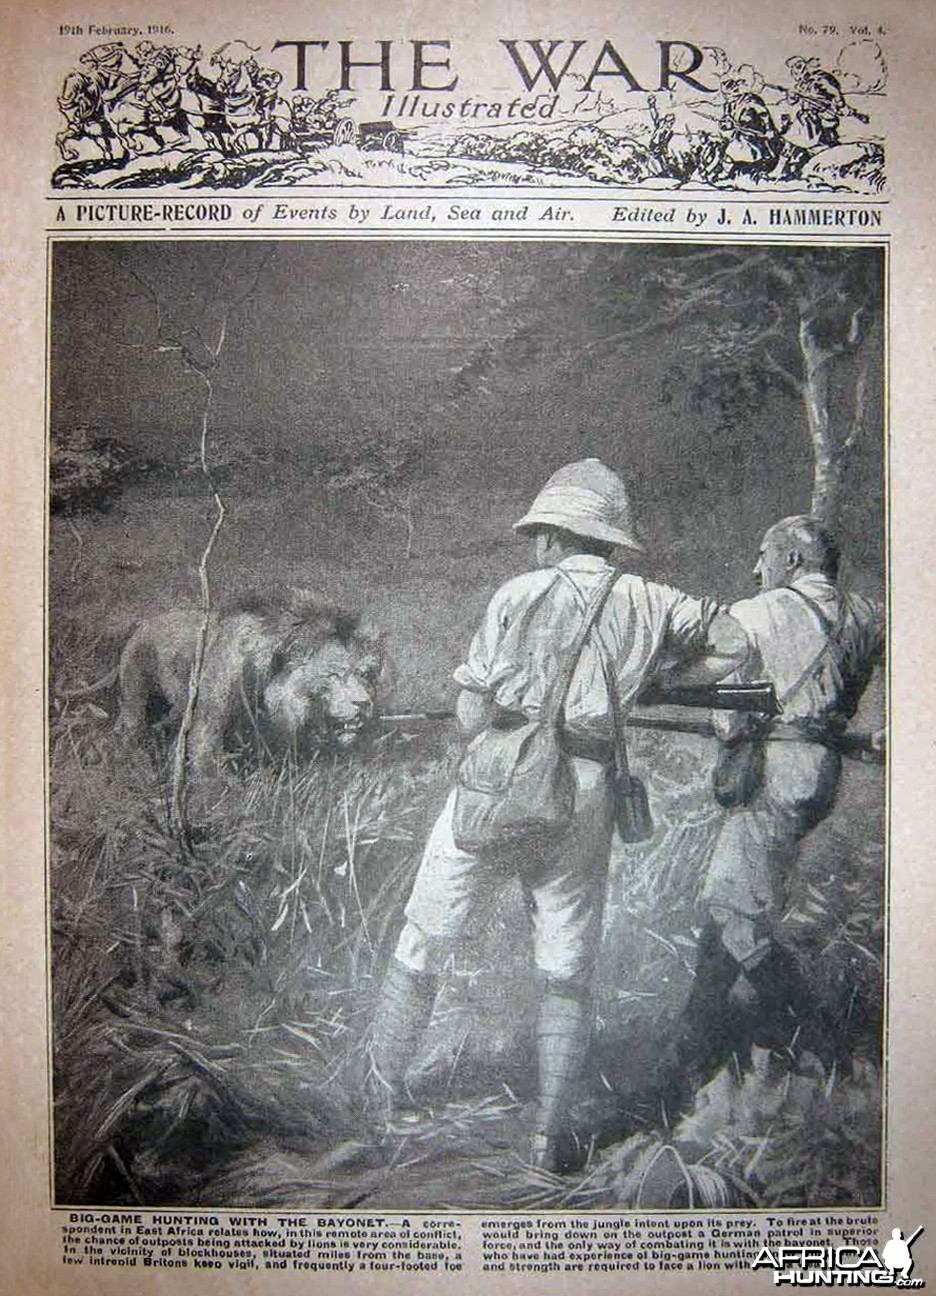 Big game hunting with the bayonet in Africa